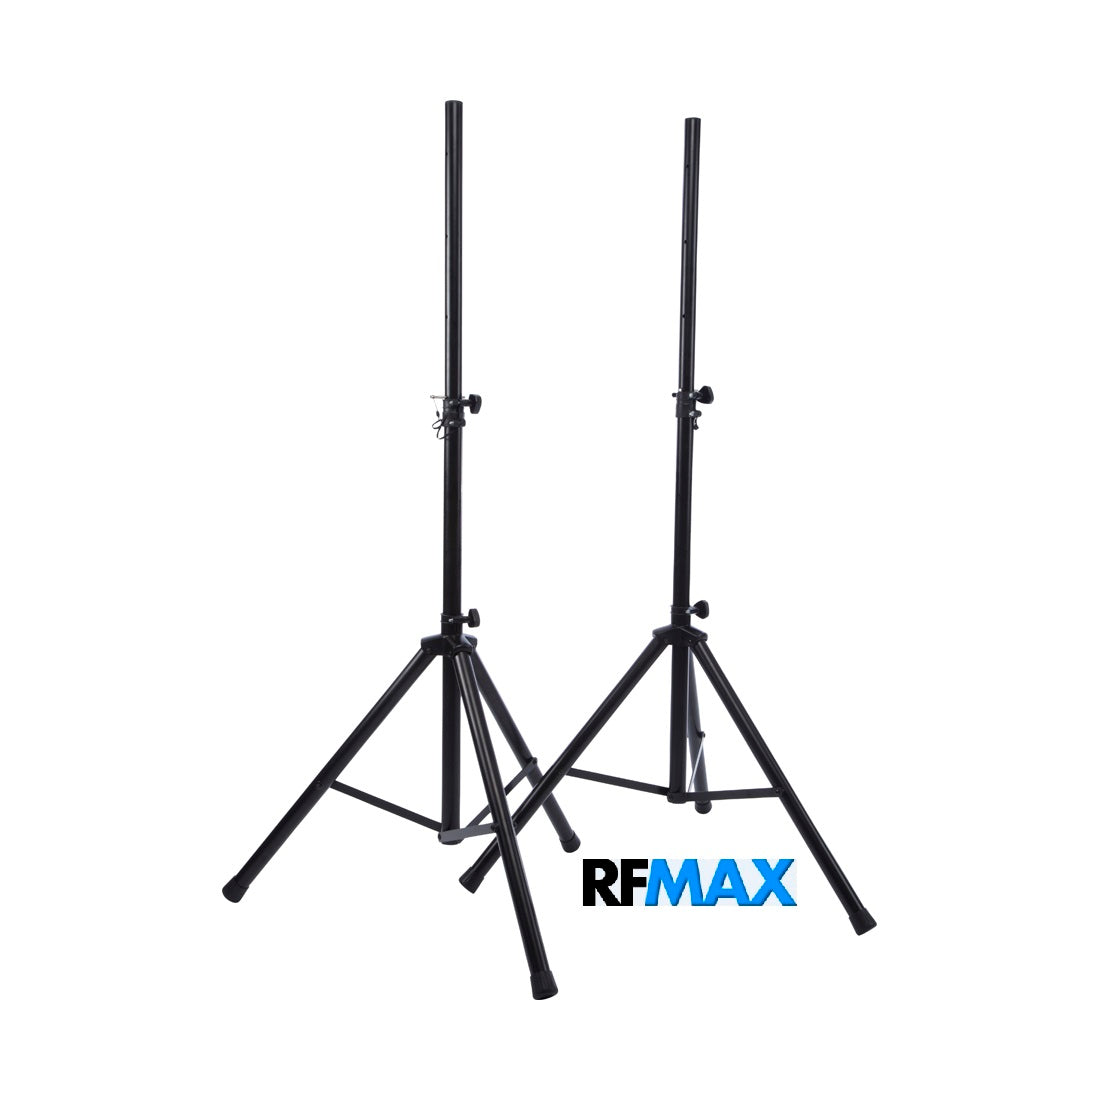 Heavy Duty Portable Antenna Mounting Tripod Stand | Adjustable 47-79 Inches Tall for RFID WiFi Panel Yagi or Omni. Single Unit - NOT a Pair.